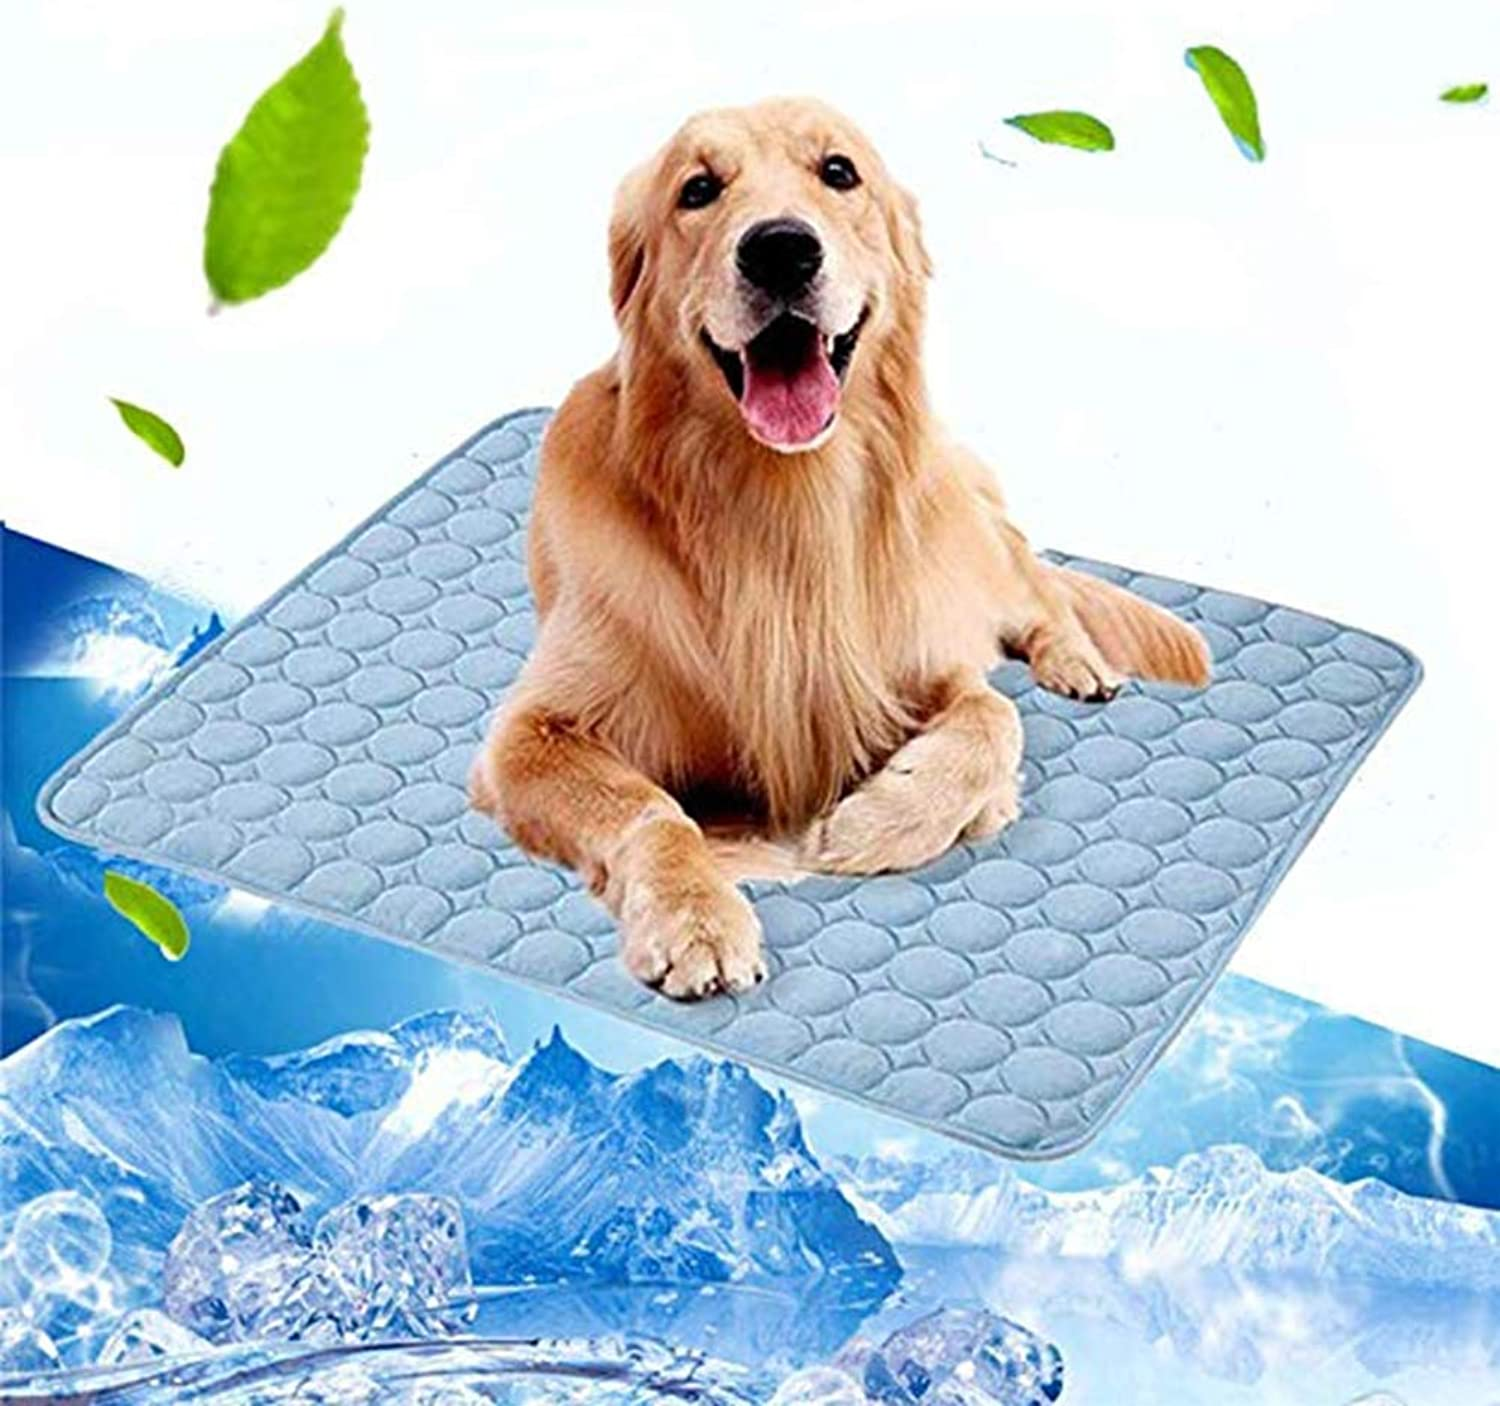 Pet Dog Self Cooling Mat Pad, Washable Ice Silk Pet Cooling Blanket, Summer Cool Comfort for Cats and Dogs Home and Travel, Car Seats, Crates and Beds,bluee,M